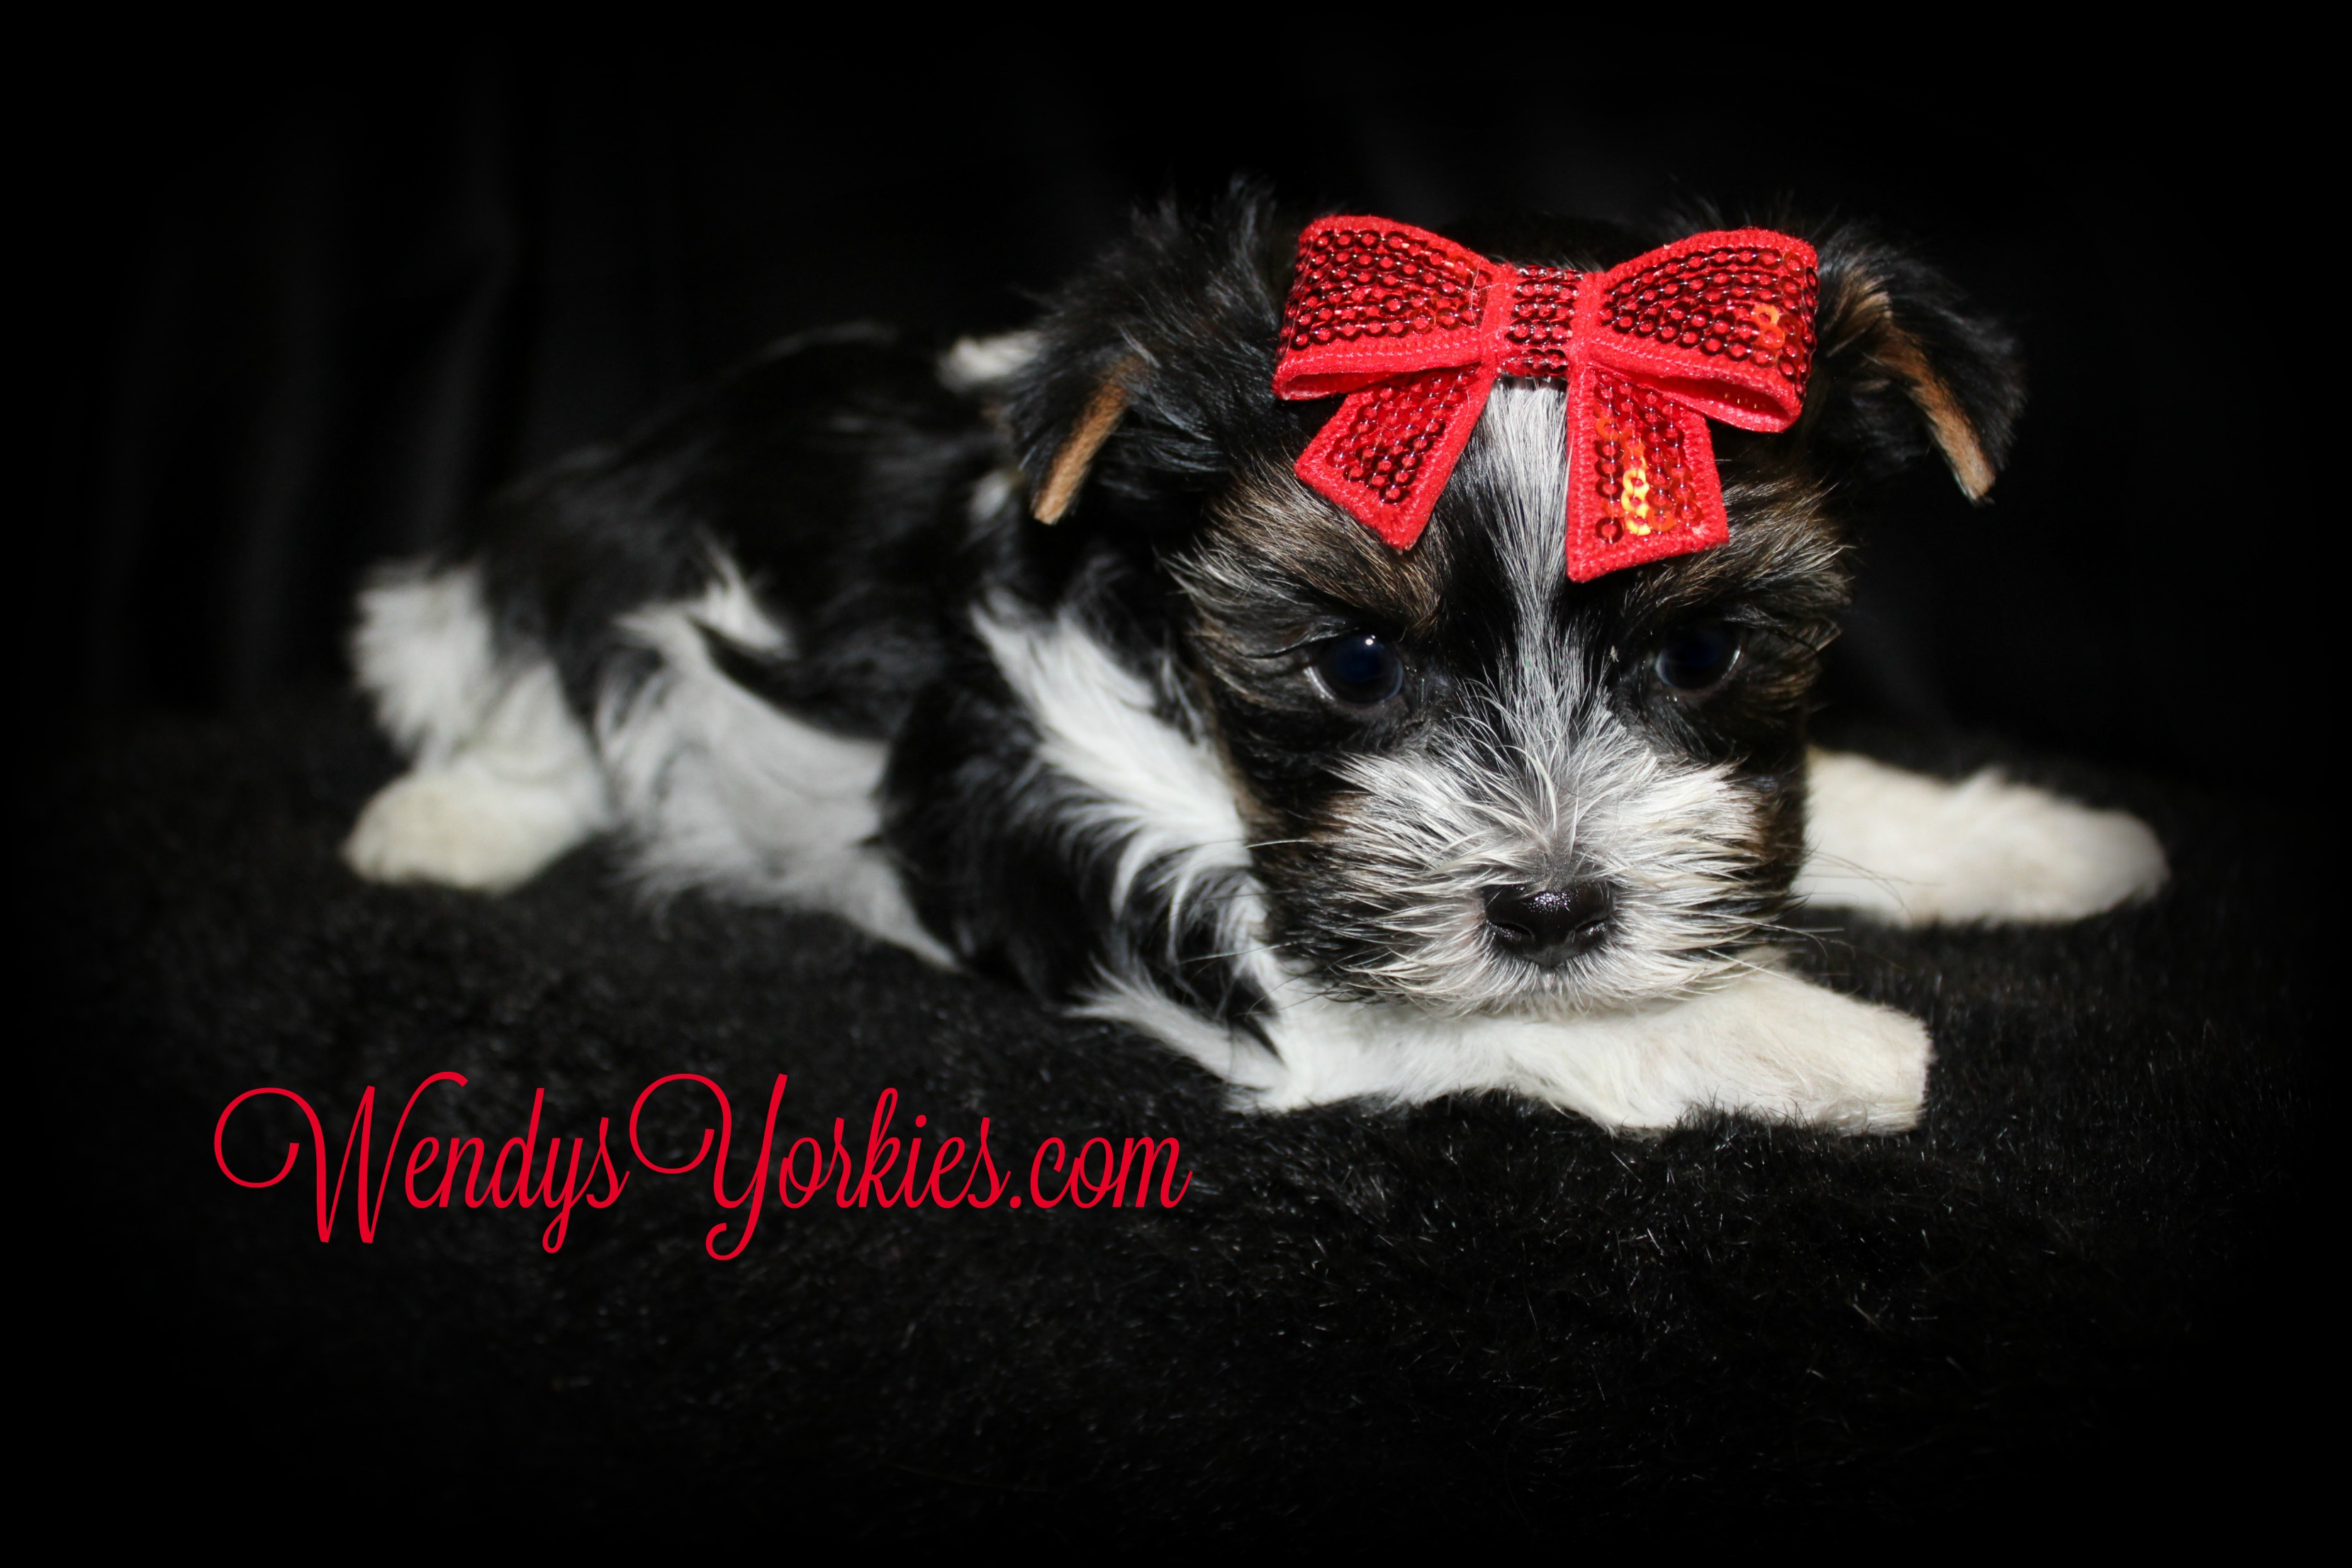 Parti Morkie puppy for sale, WendysYorkies.com, Quin m1